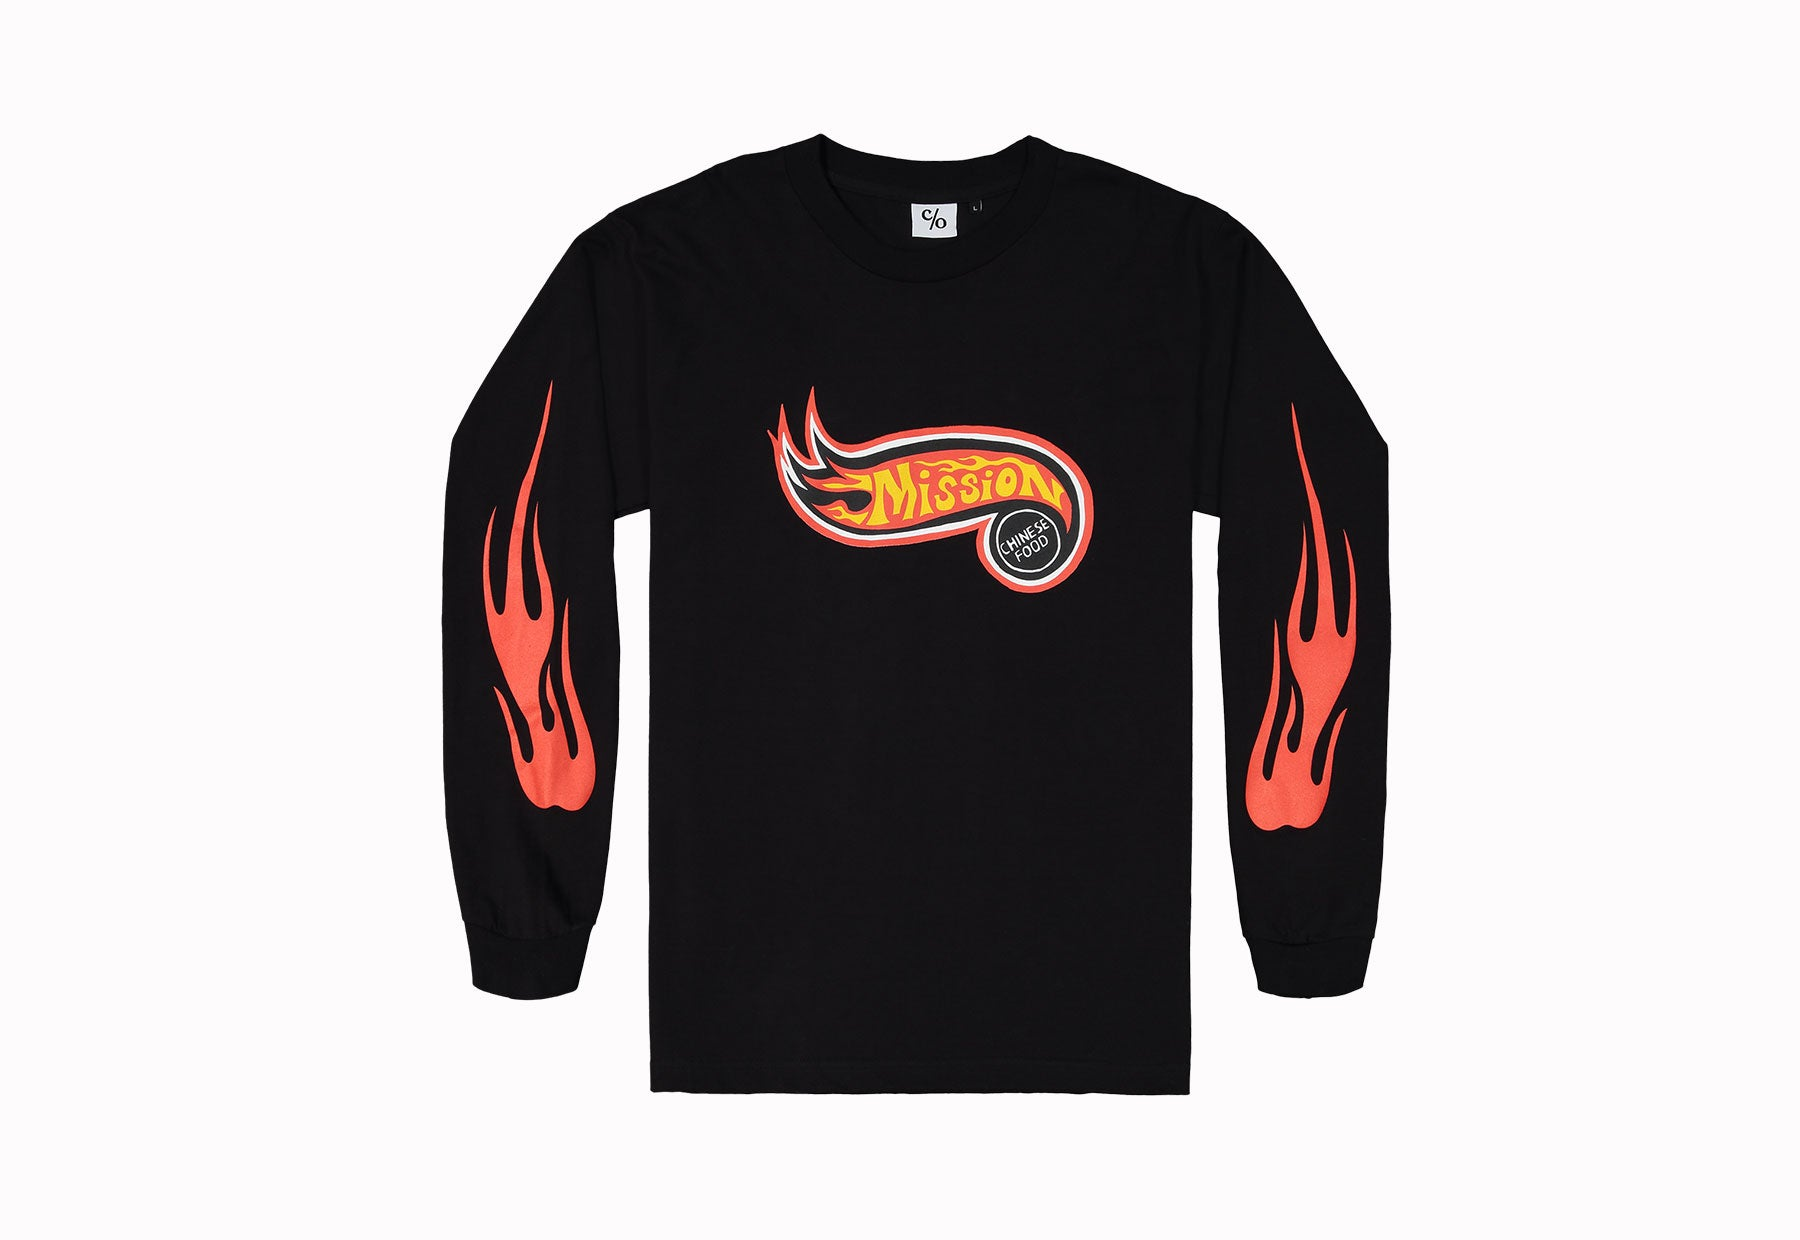 Mission Chinese Food Long Sleeve Shirt by Danny Bowien and Justin Hager